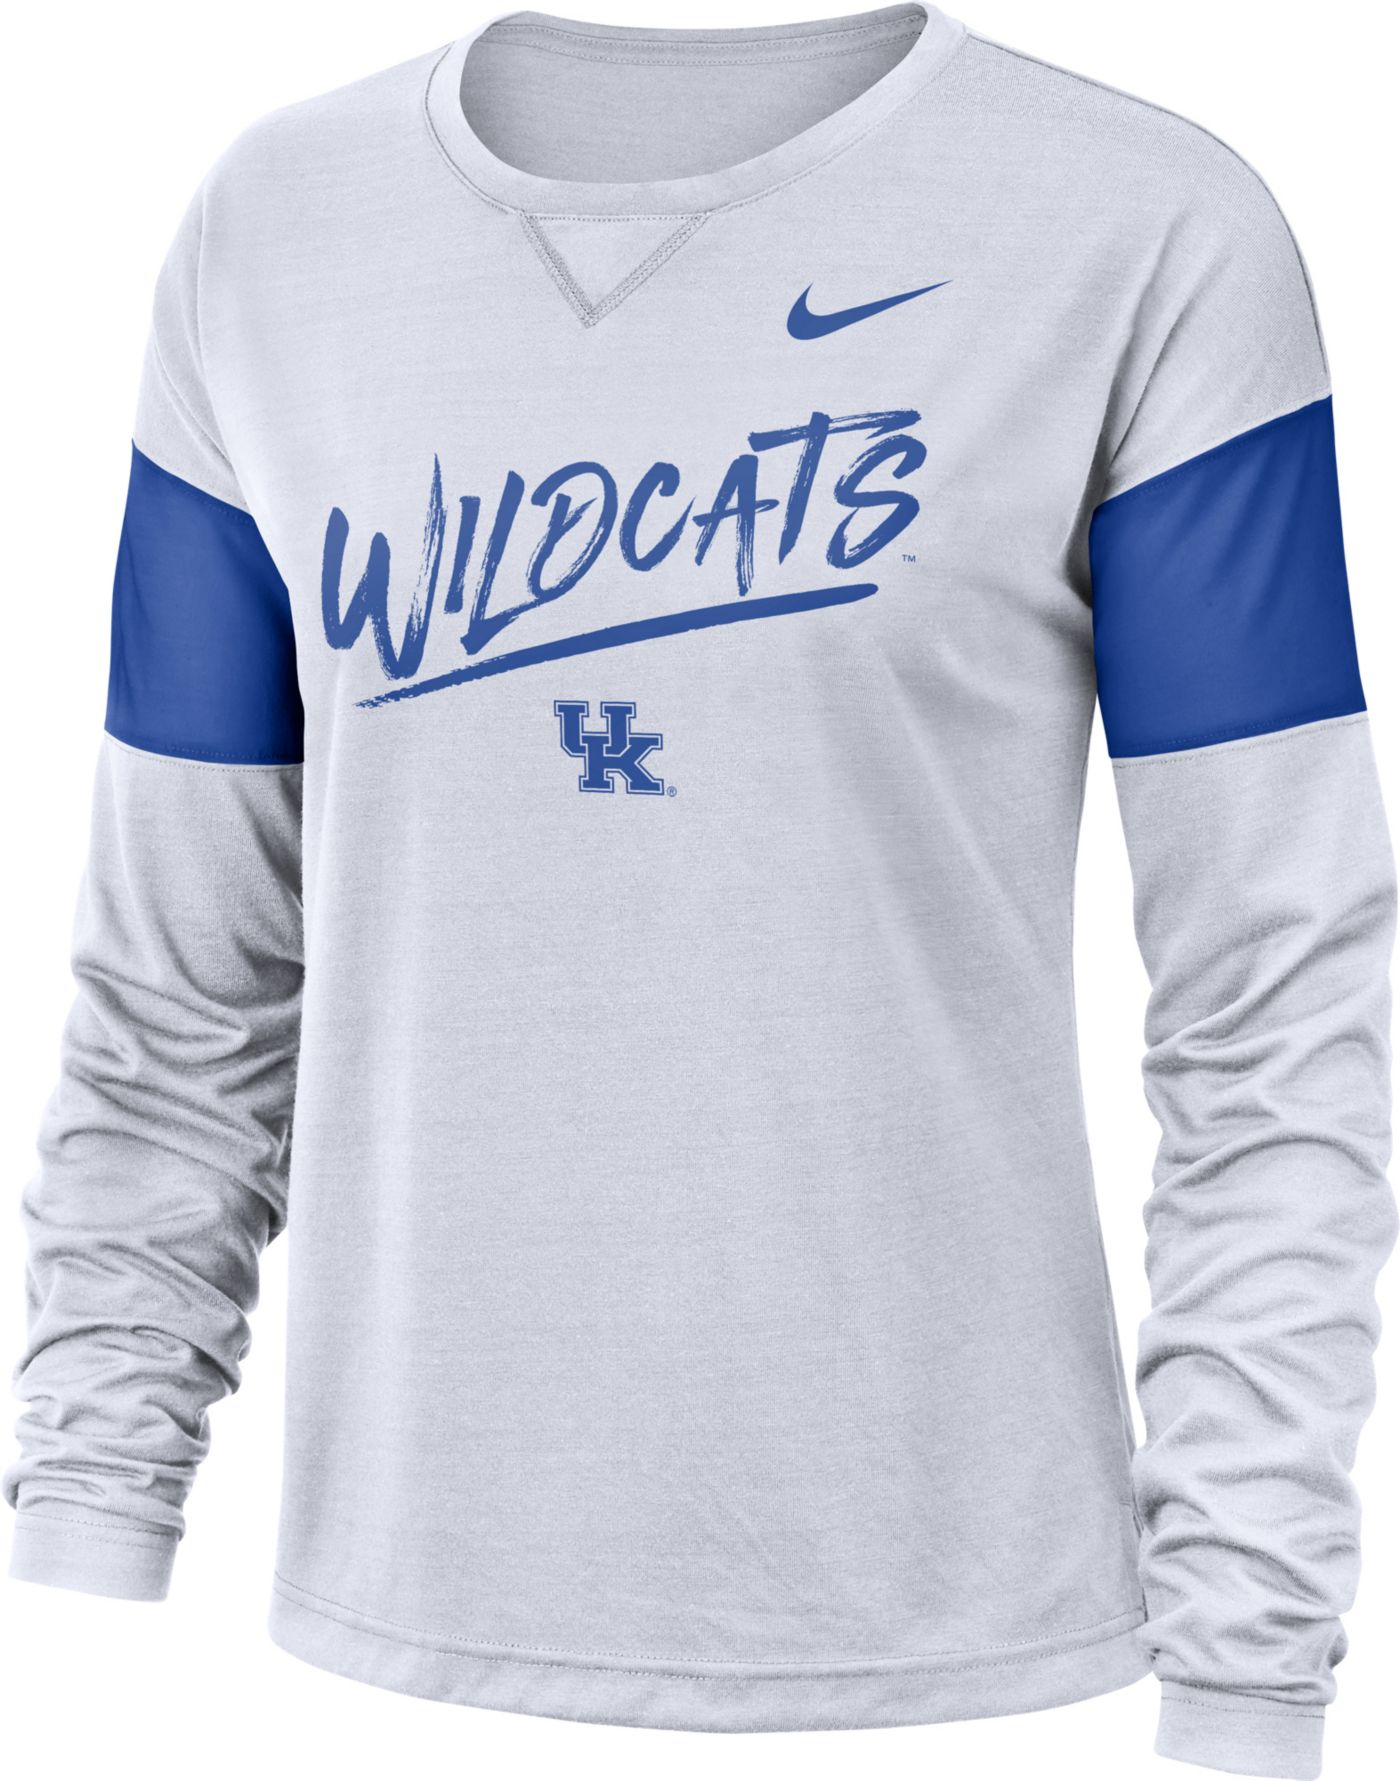 Nike Women's Kentucky Wildcats Dri-FIT Breathe Long Sleeve White T-Shirt